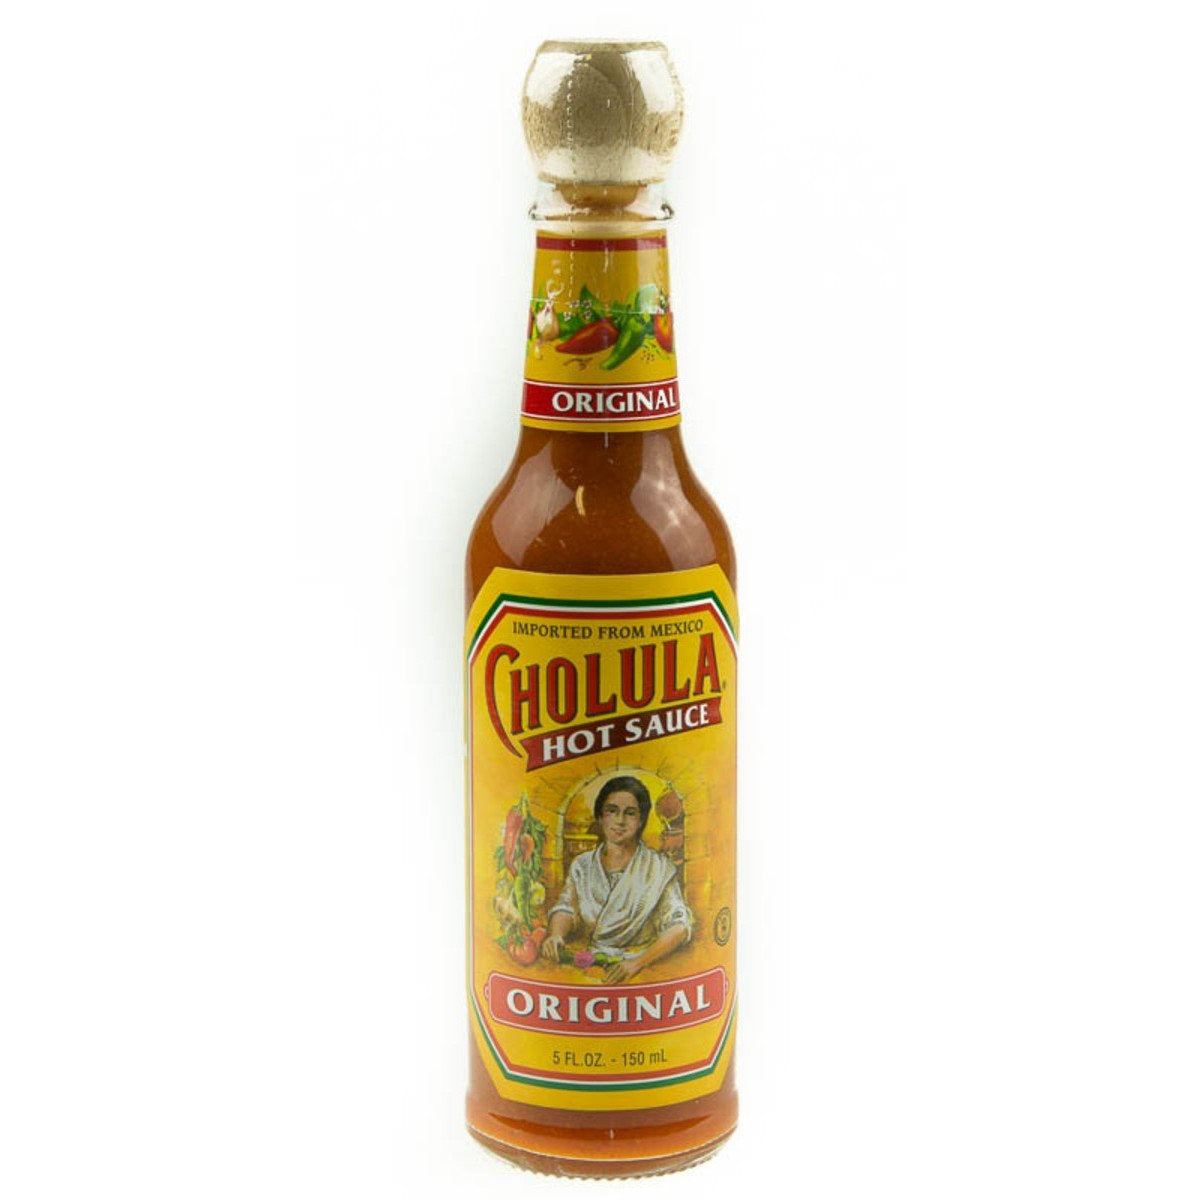 Cholula Original 148ml - Best before 04/2021